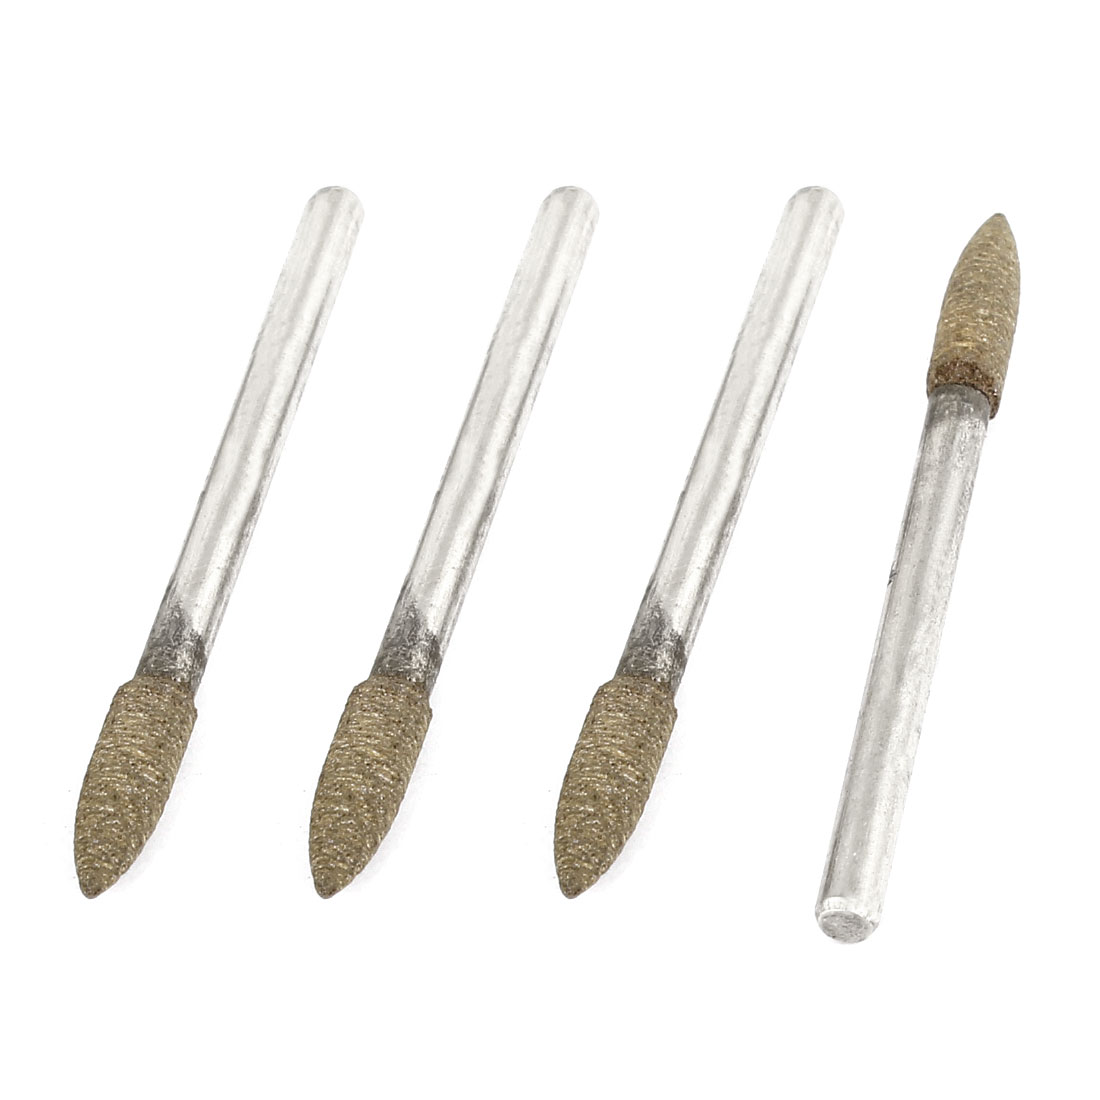 4Pcs 3mm x 4mm Alloy Shank Abrasive Sanding Polishing Mounted Grinding Point Sharpening Tool